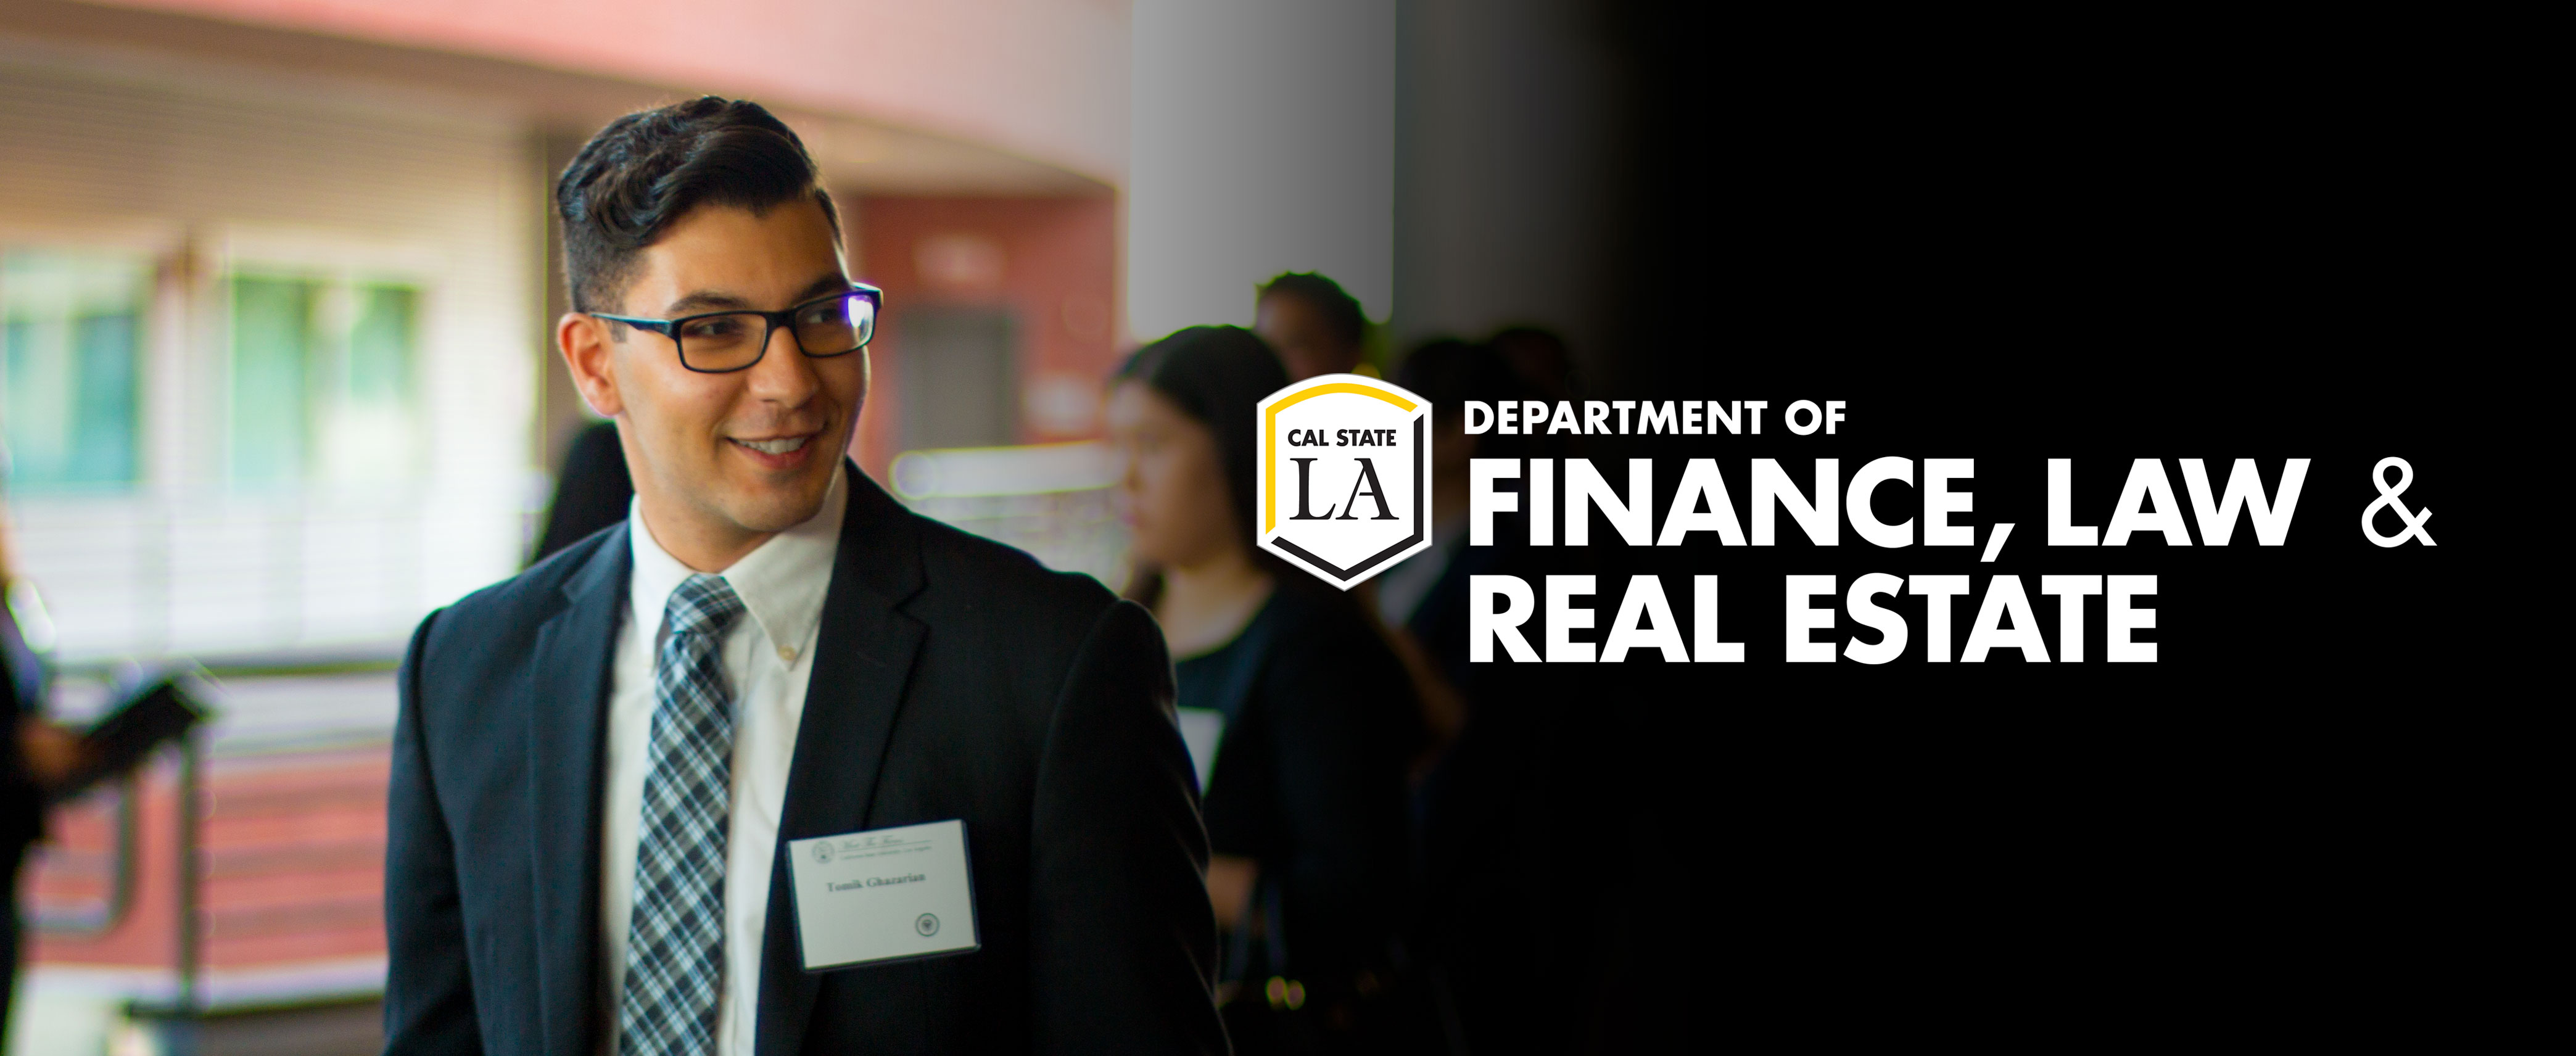 Cal State LA College of Business & Economics | Department of Finance, Law and Real Estate